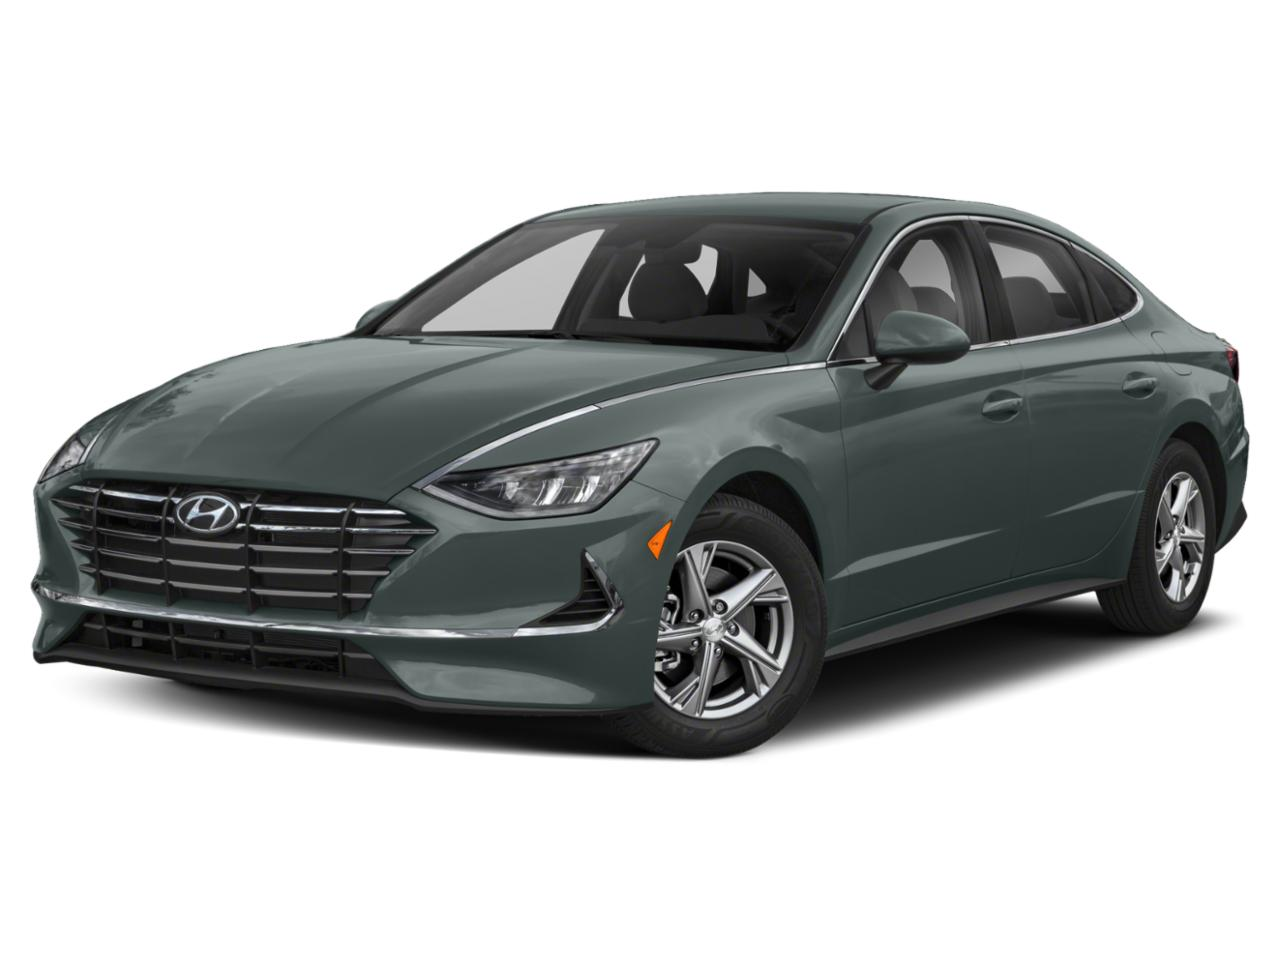 2021 Hyundai Sonata Vehicle Photo in Odessa, TX 79762